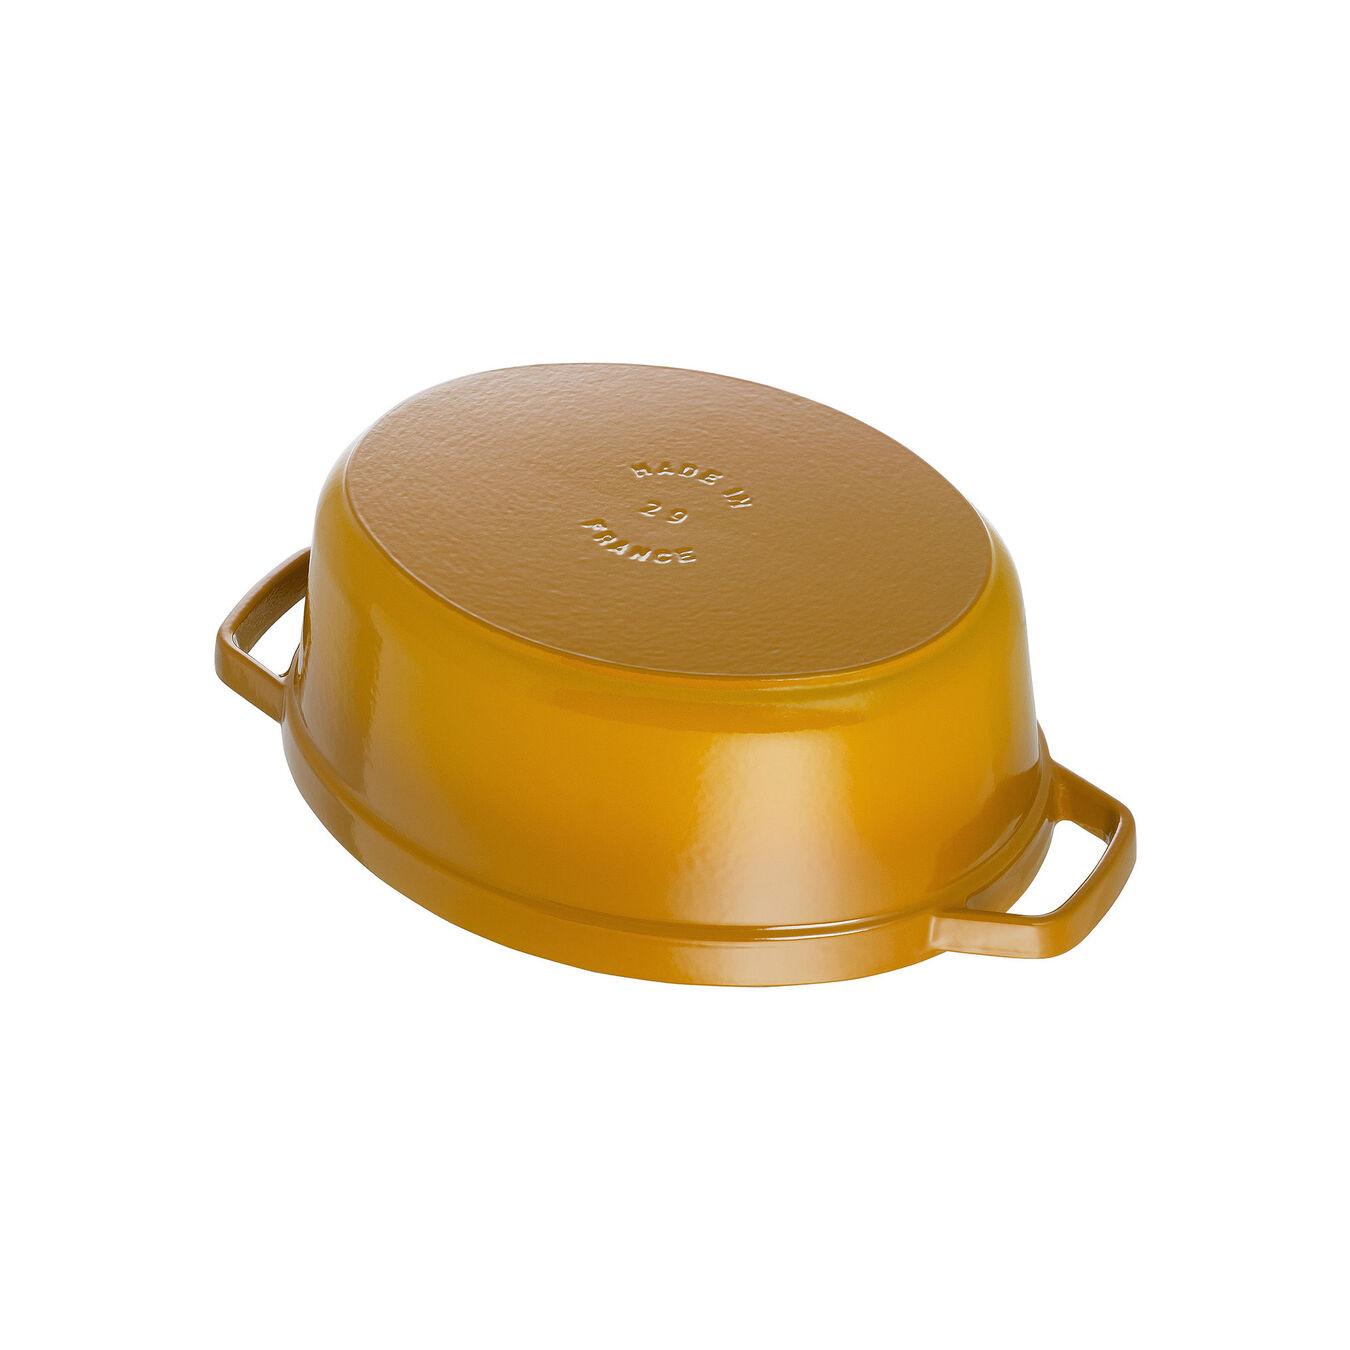 5.5 l Cast iron oval Cocotte, Mustard,,large 4